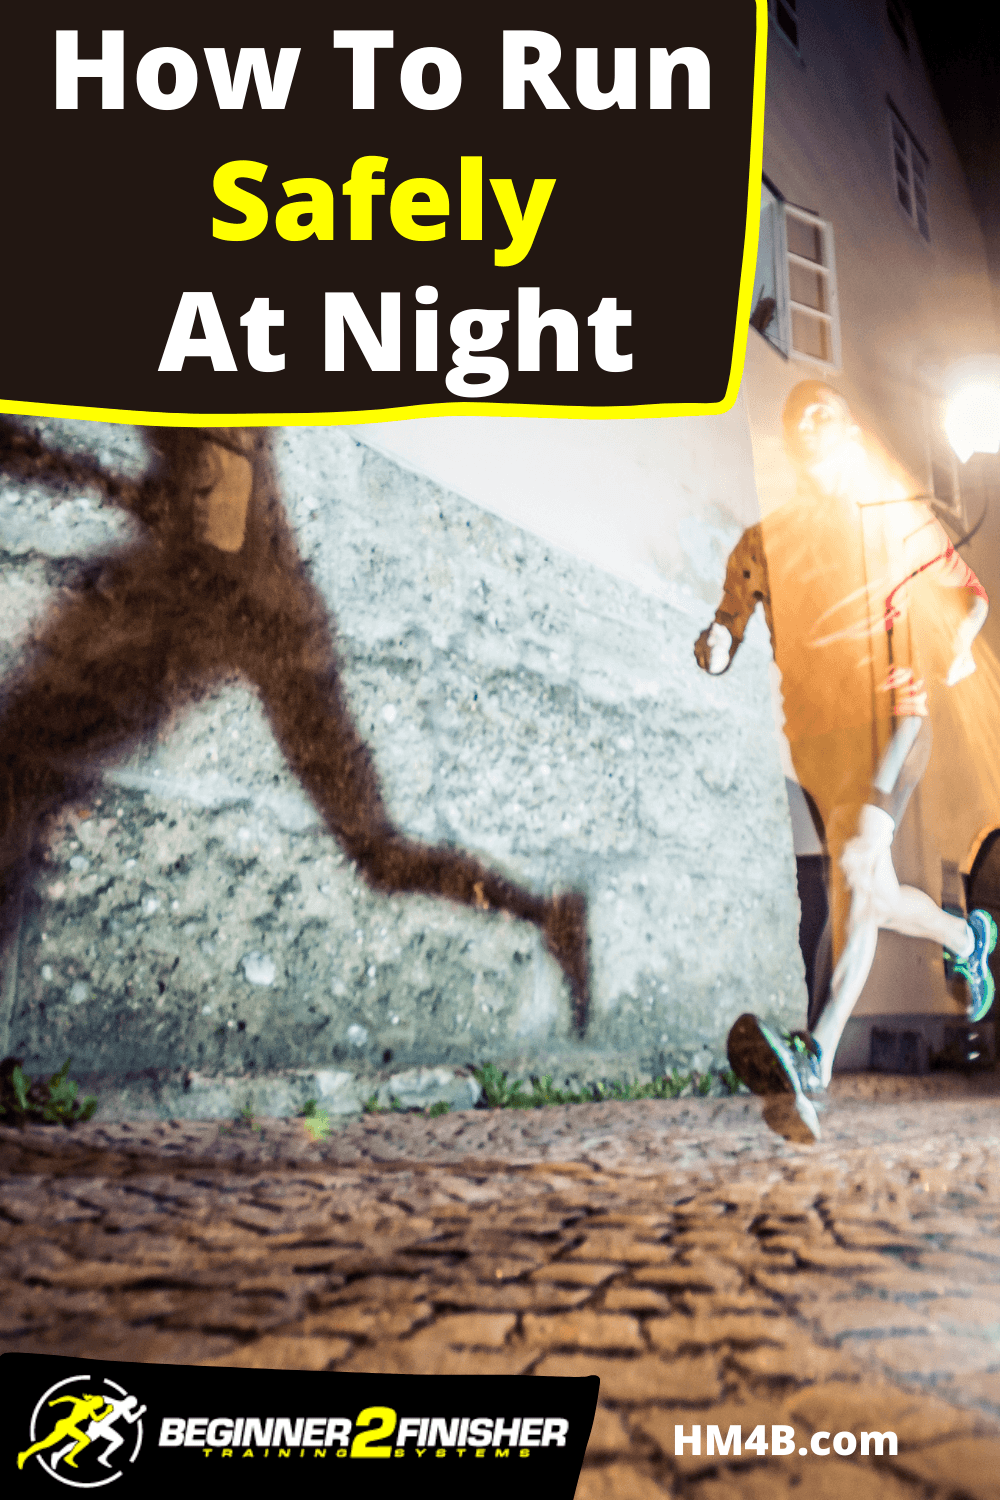 16 Tips For Running At Night - Safely